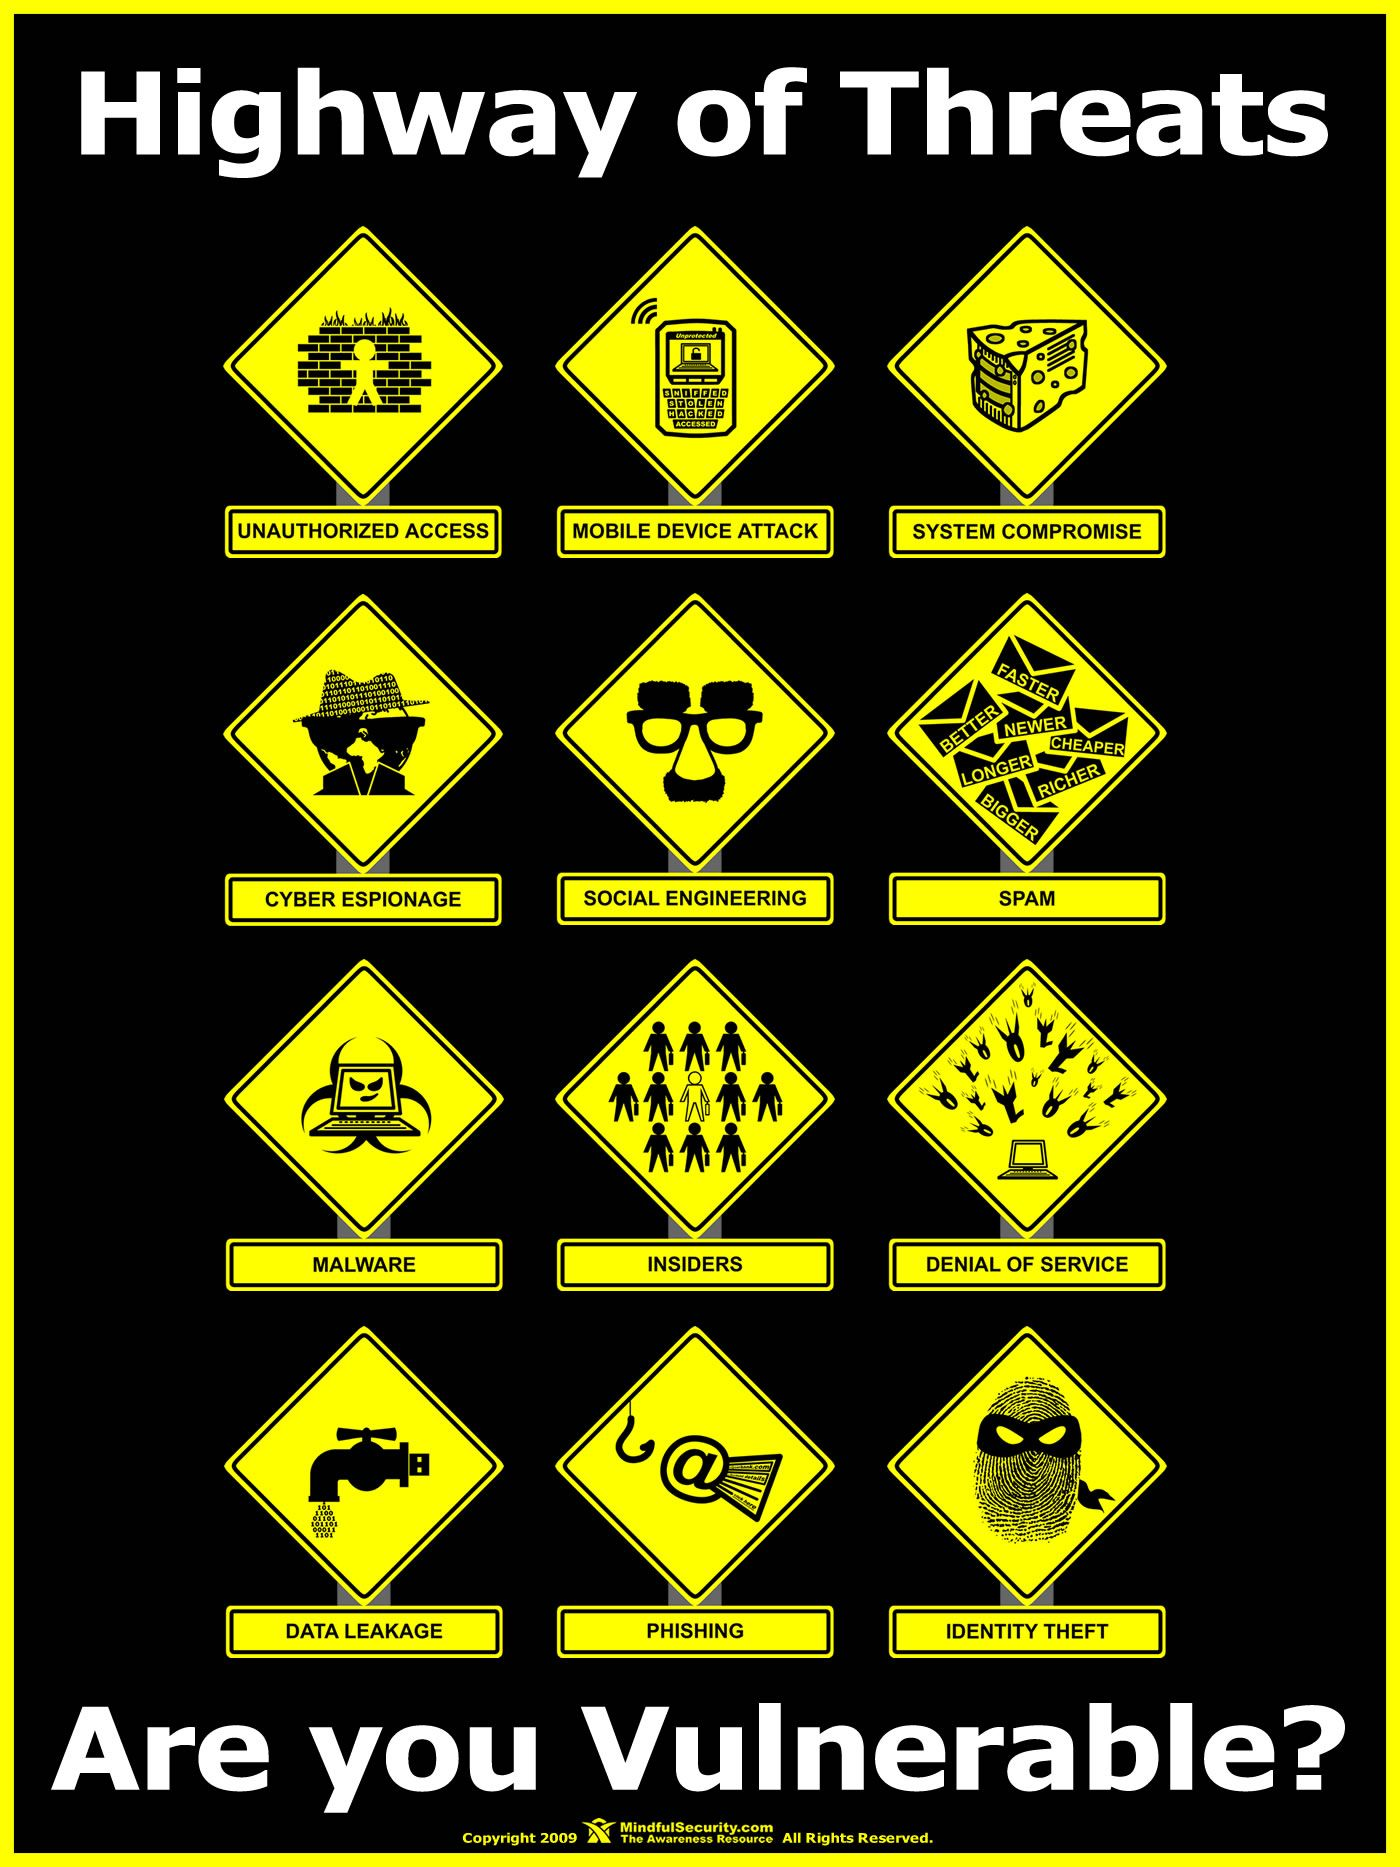 Highway of Threats - I think this is quite a clever poster ...